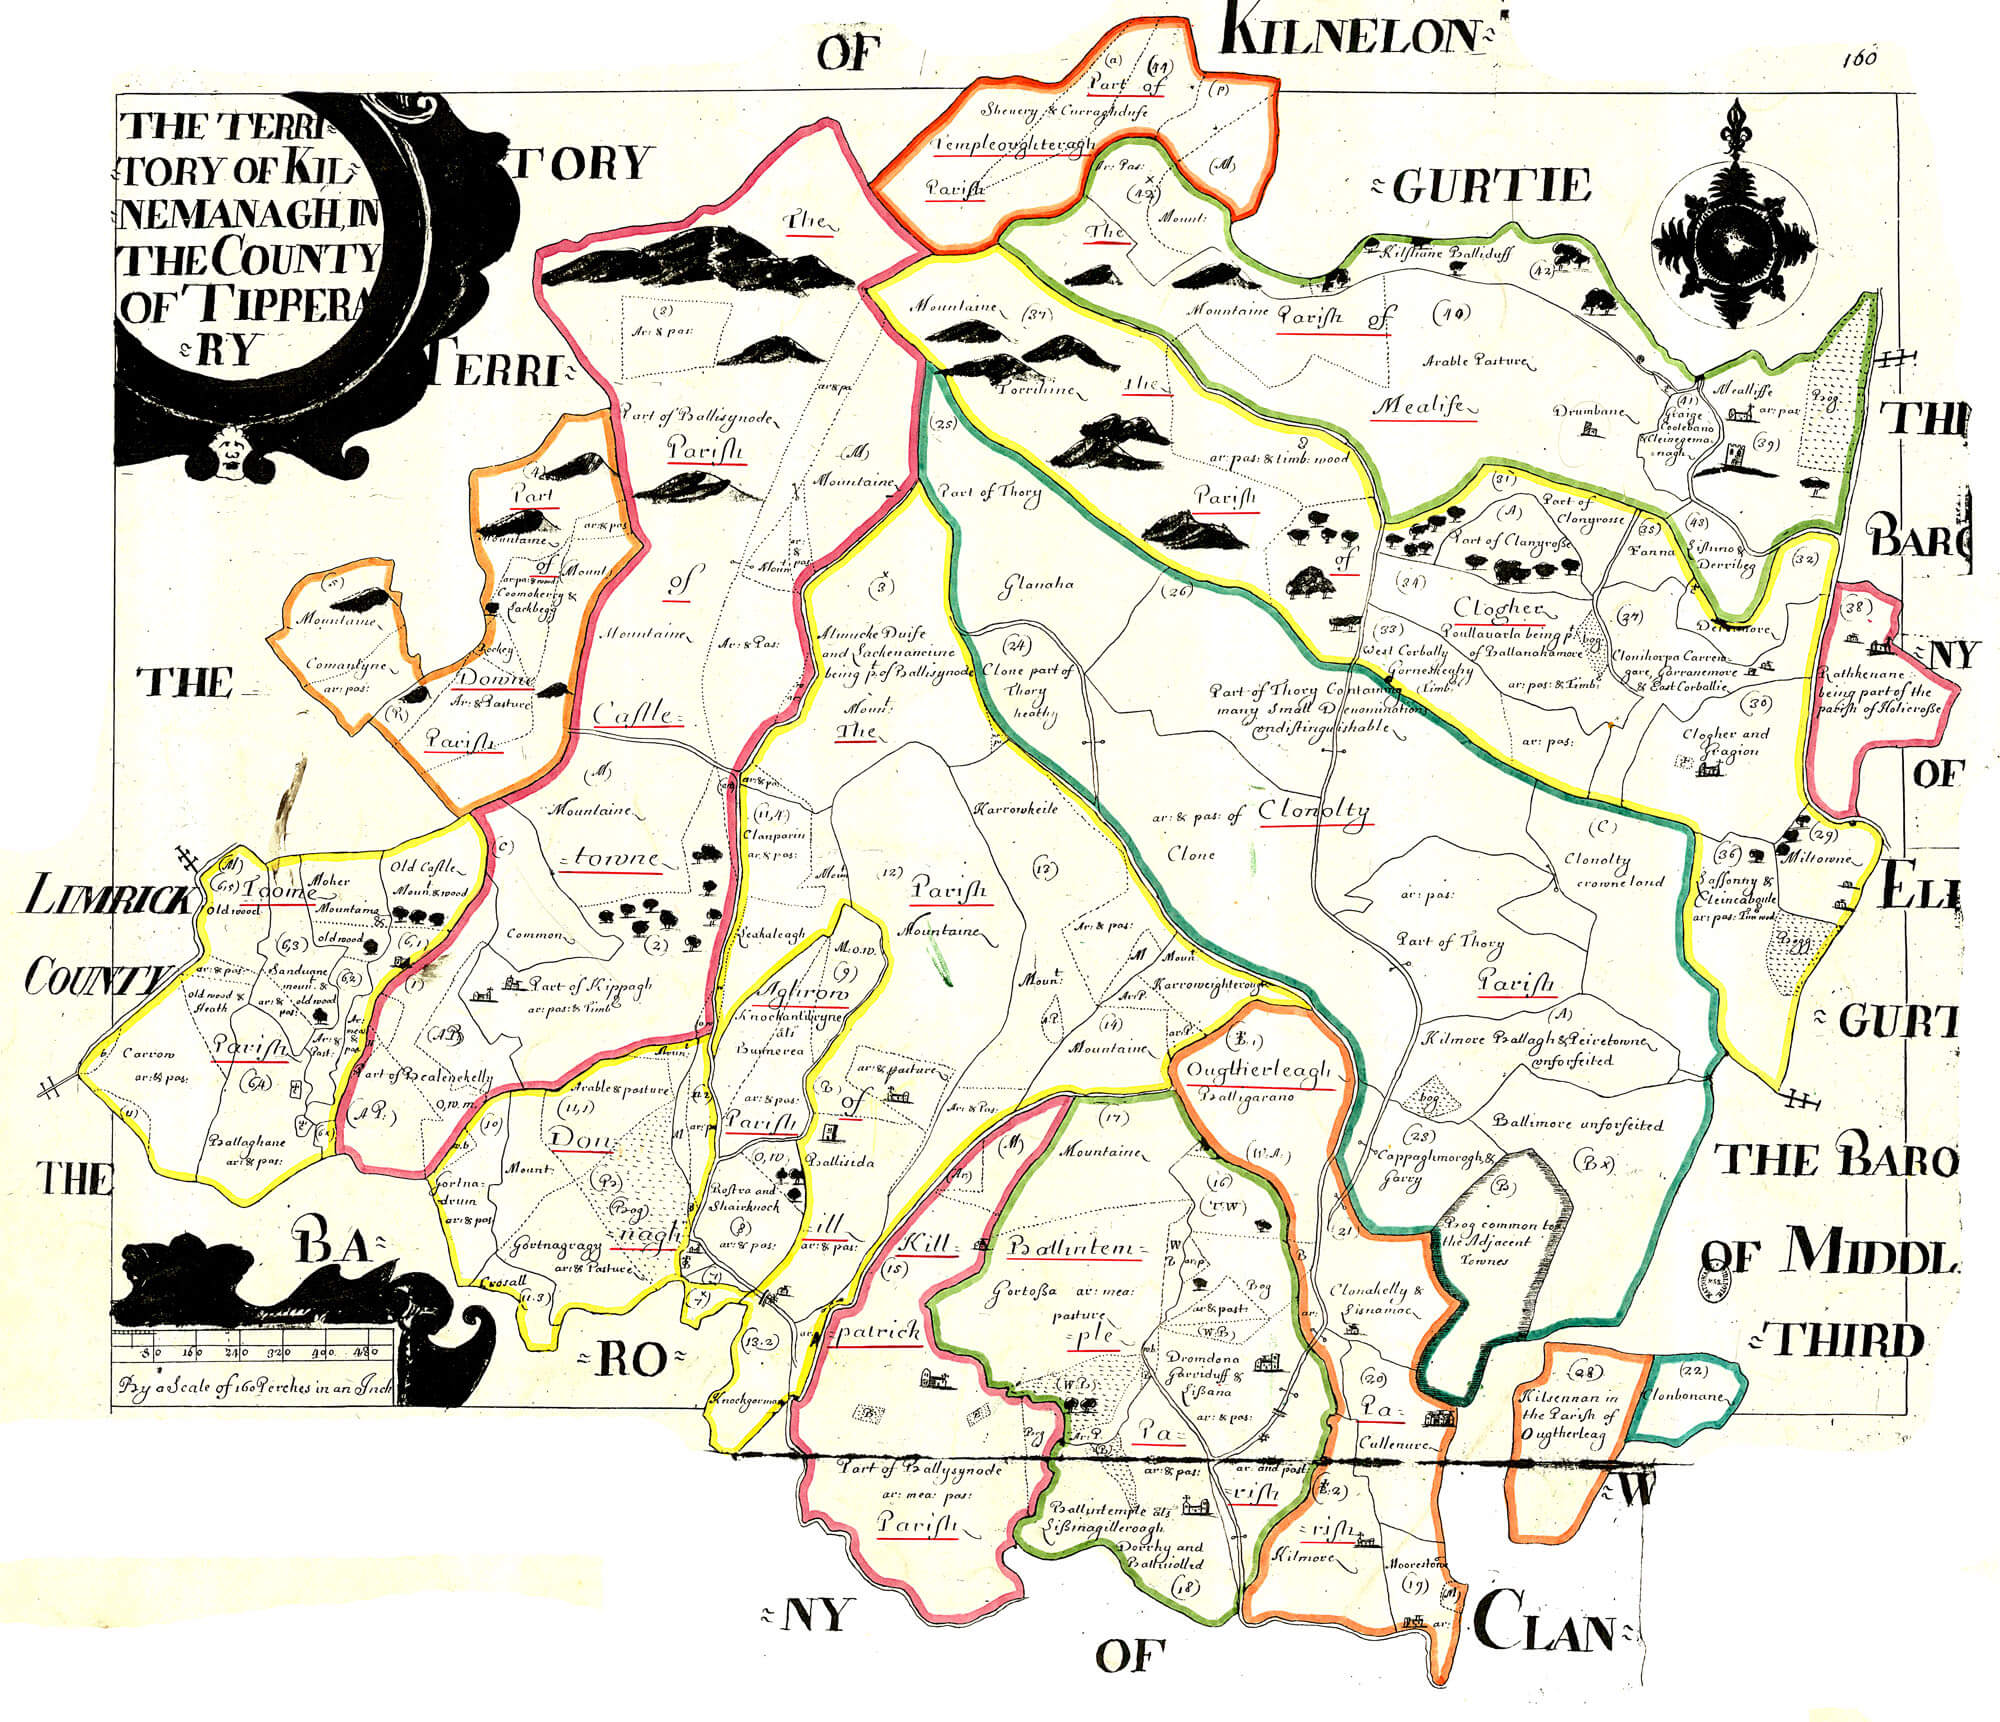 County Tipperary Ireland Map.Ireland Barony Maps County Tipperary L Brown Collection